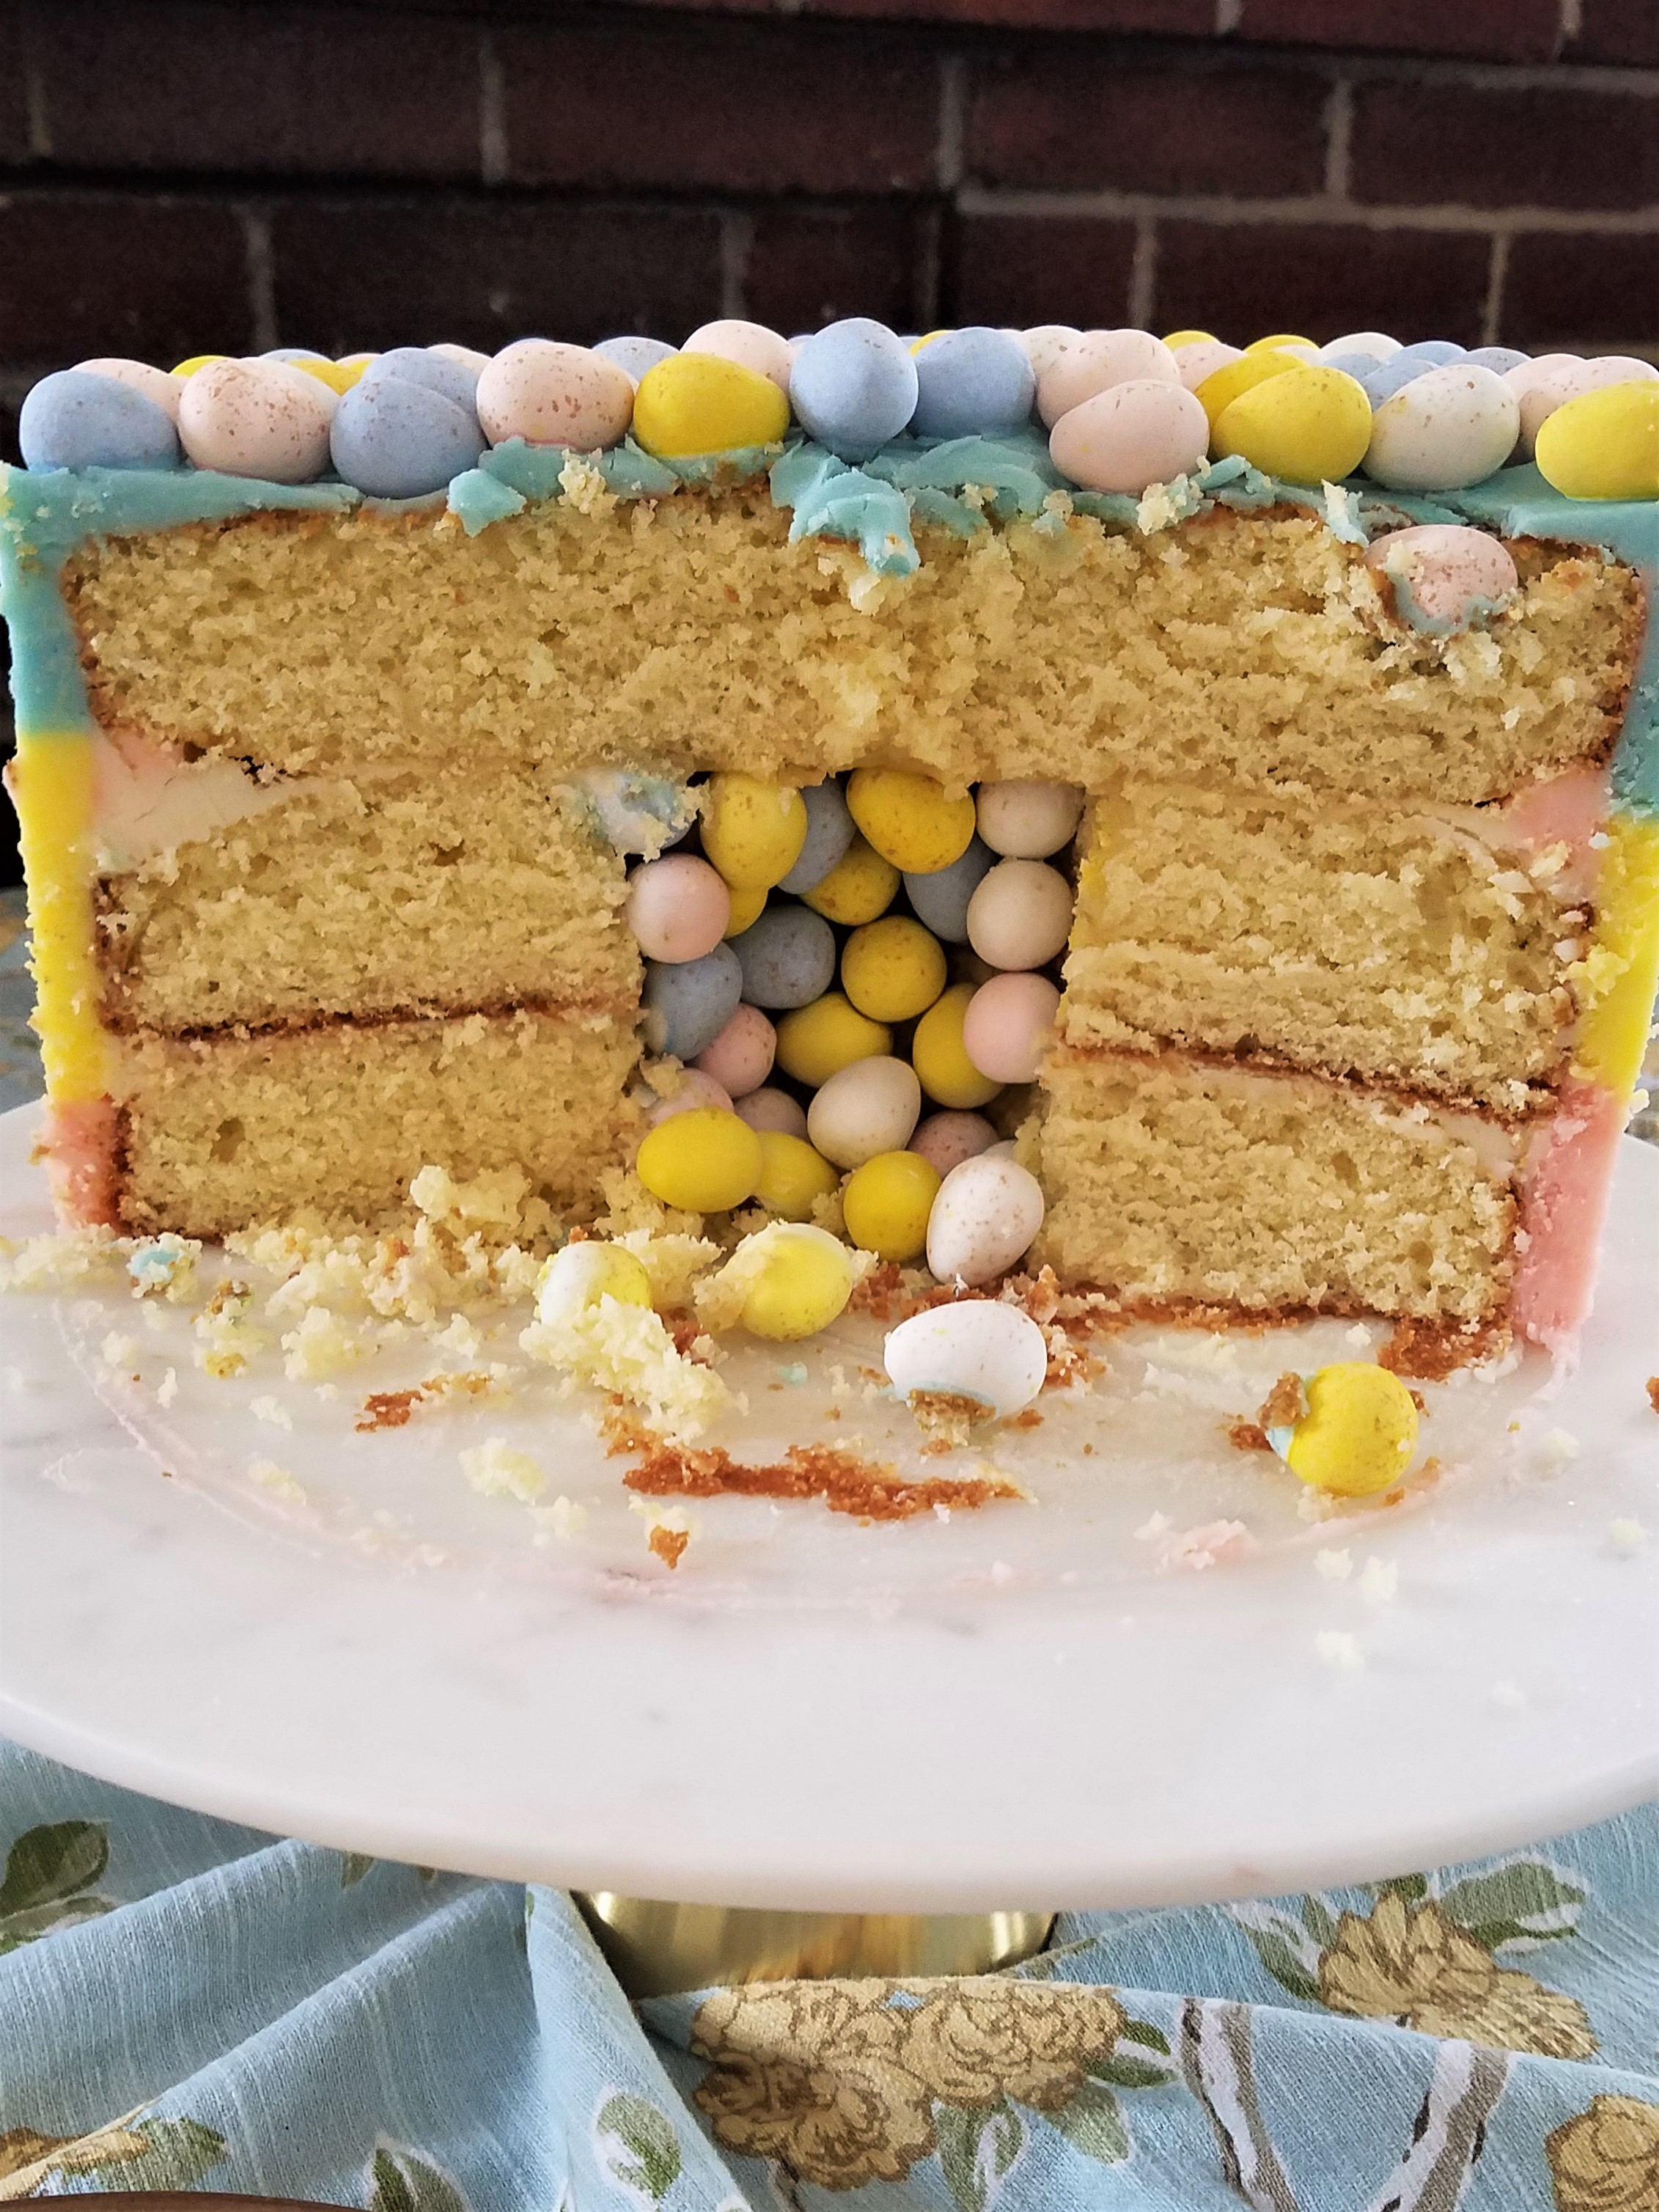 How To Make An Ombré Easter Cake: The surprise inside!